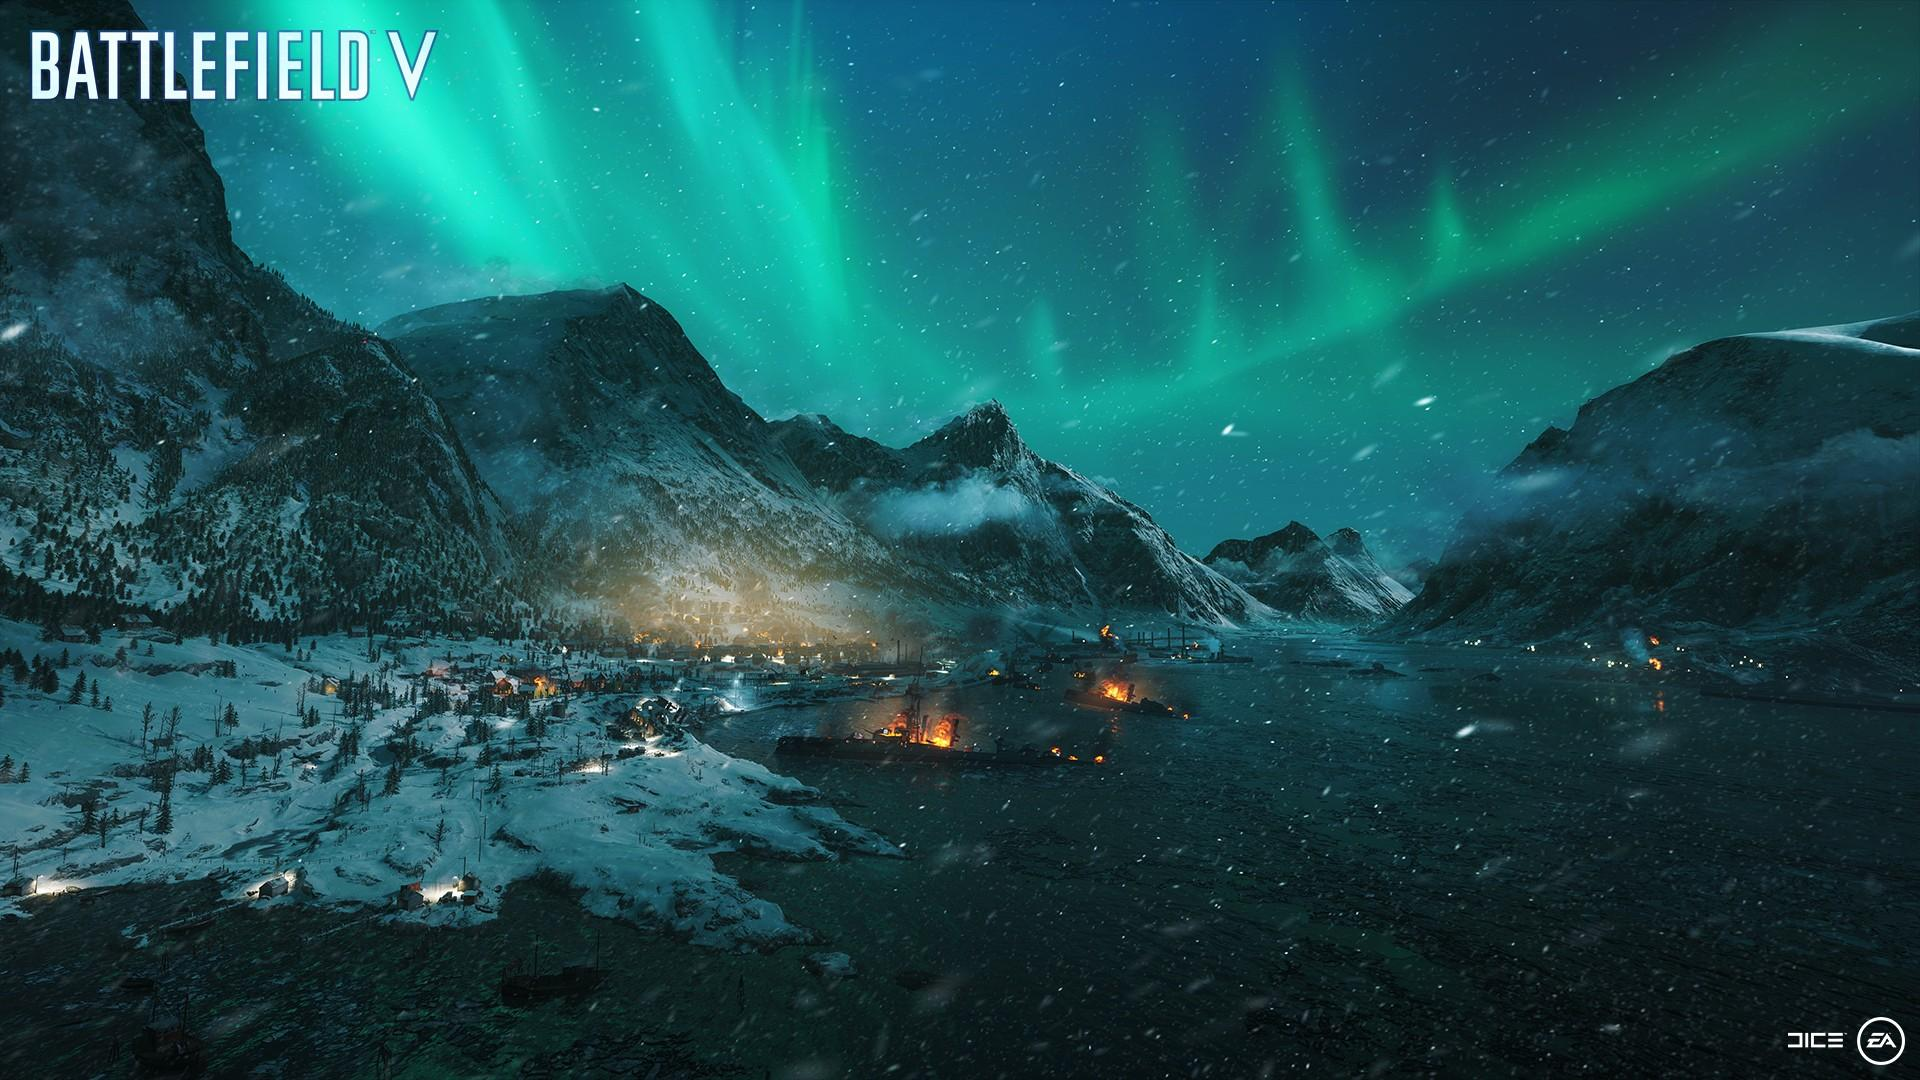 Battlefield V is truly a stunning-looking game